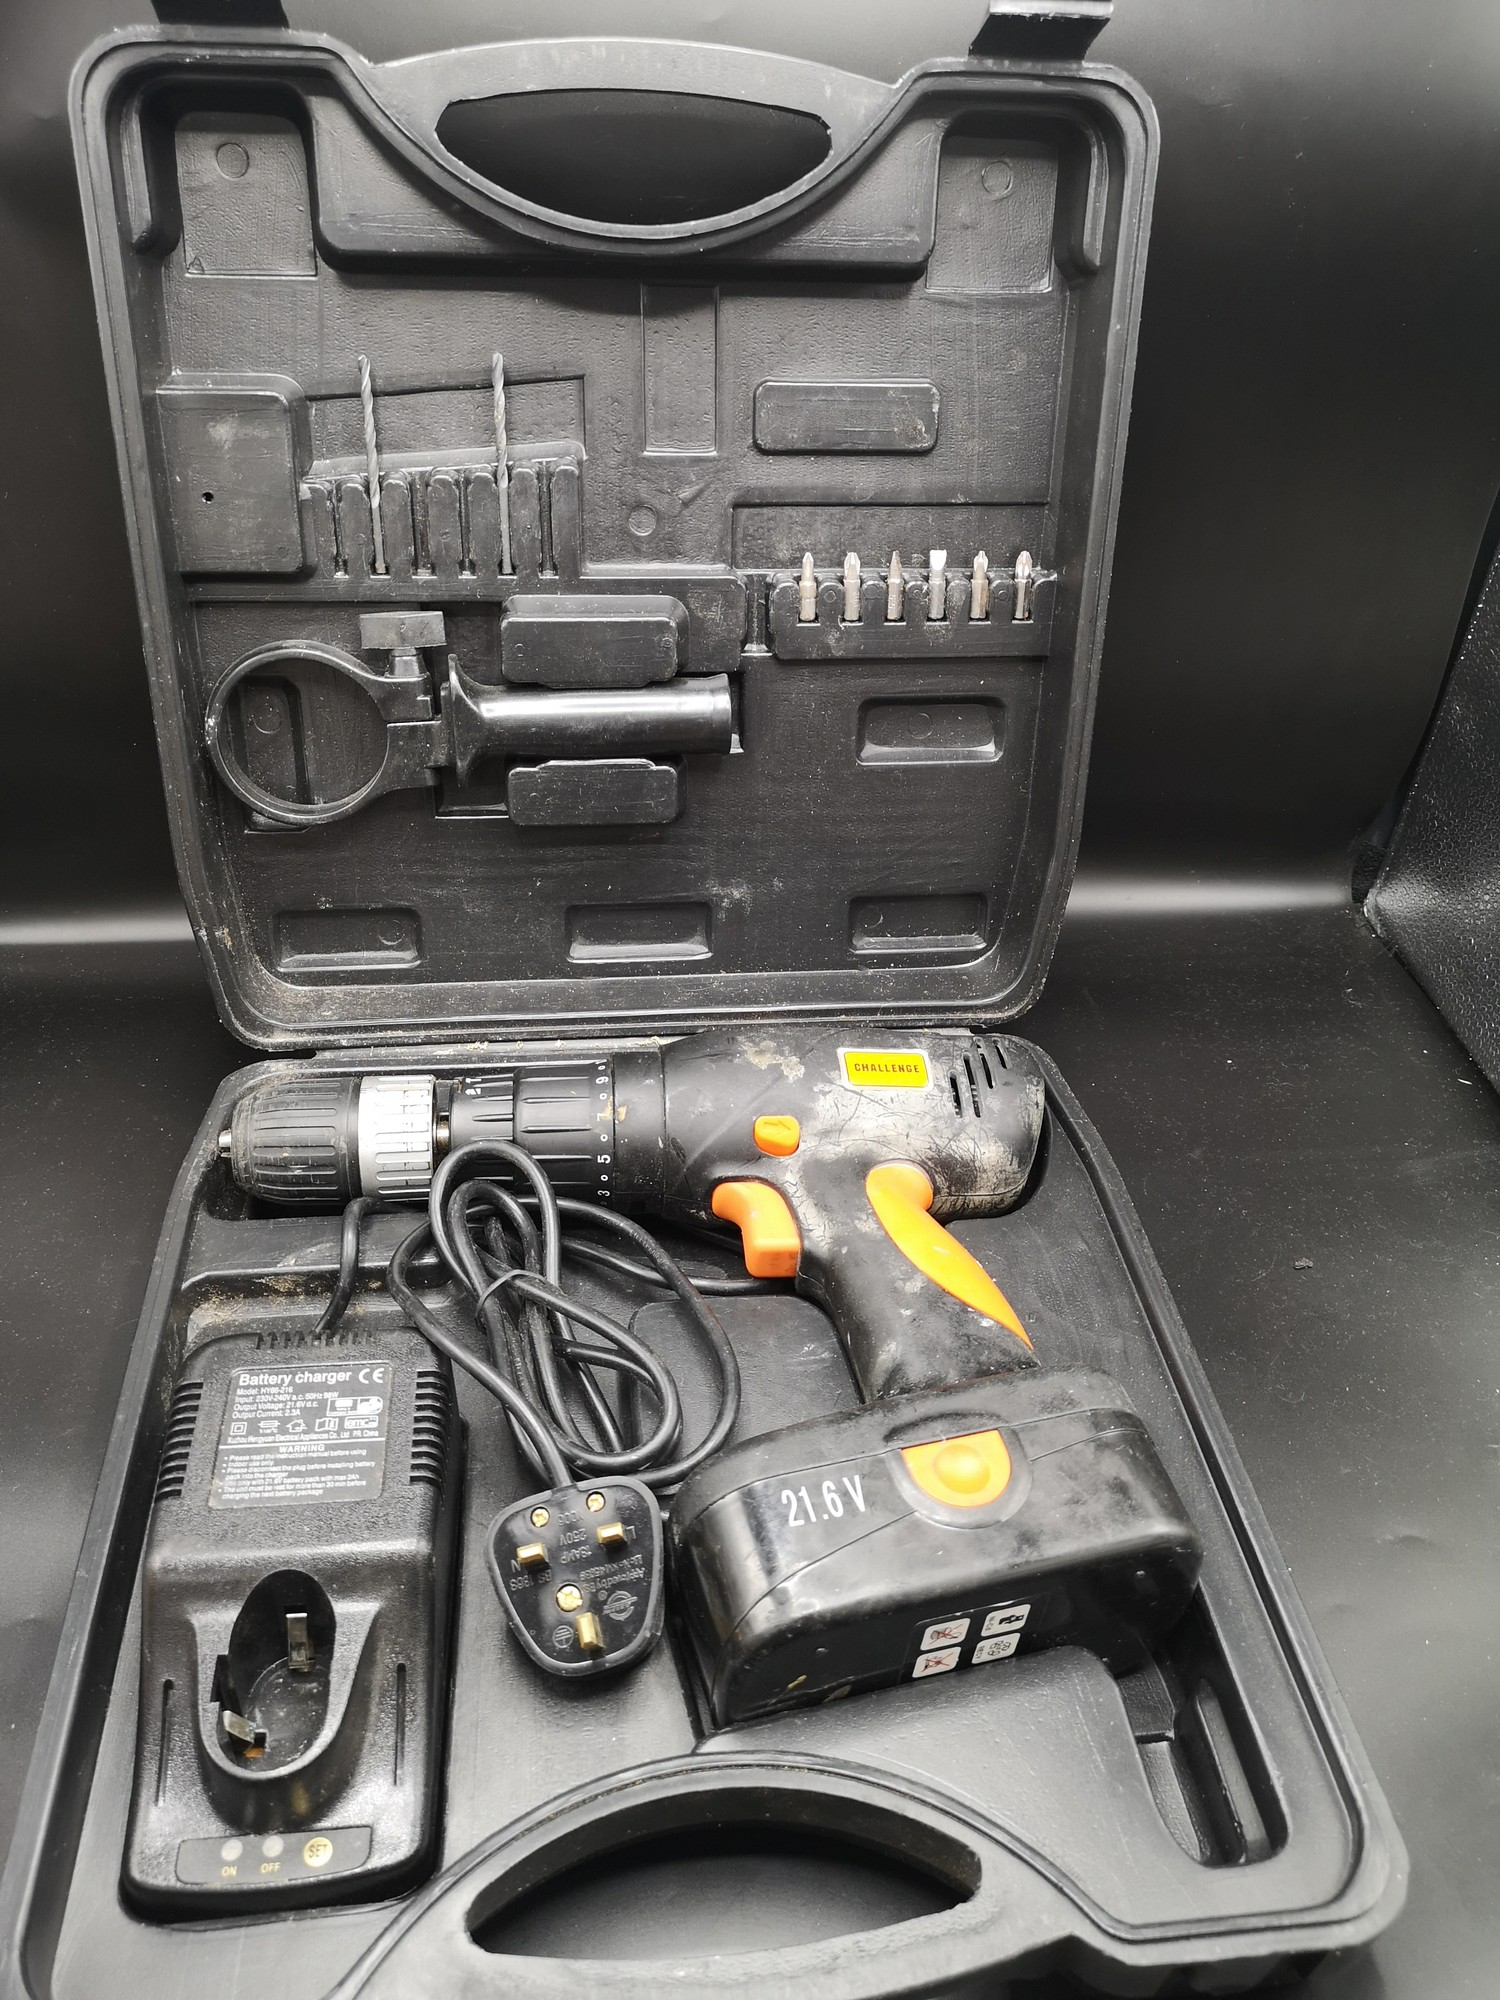 Power challenge drill boxed.